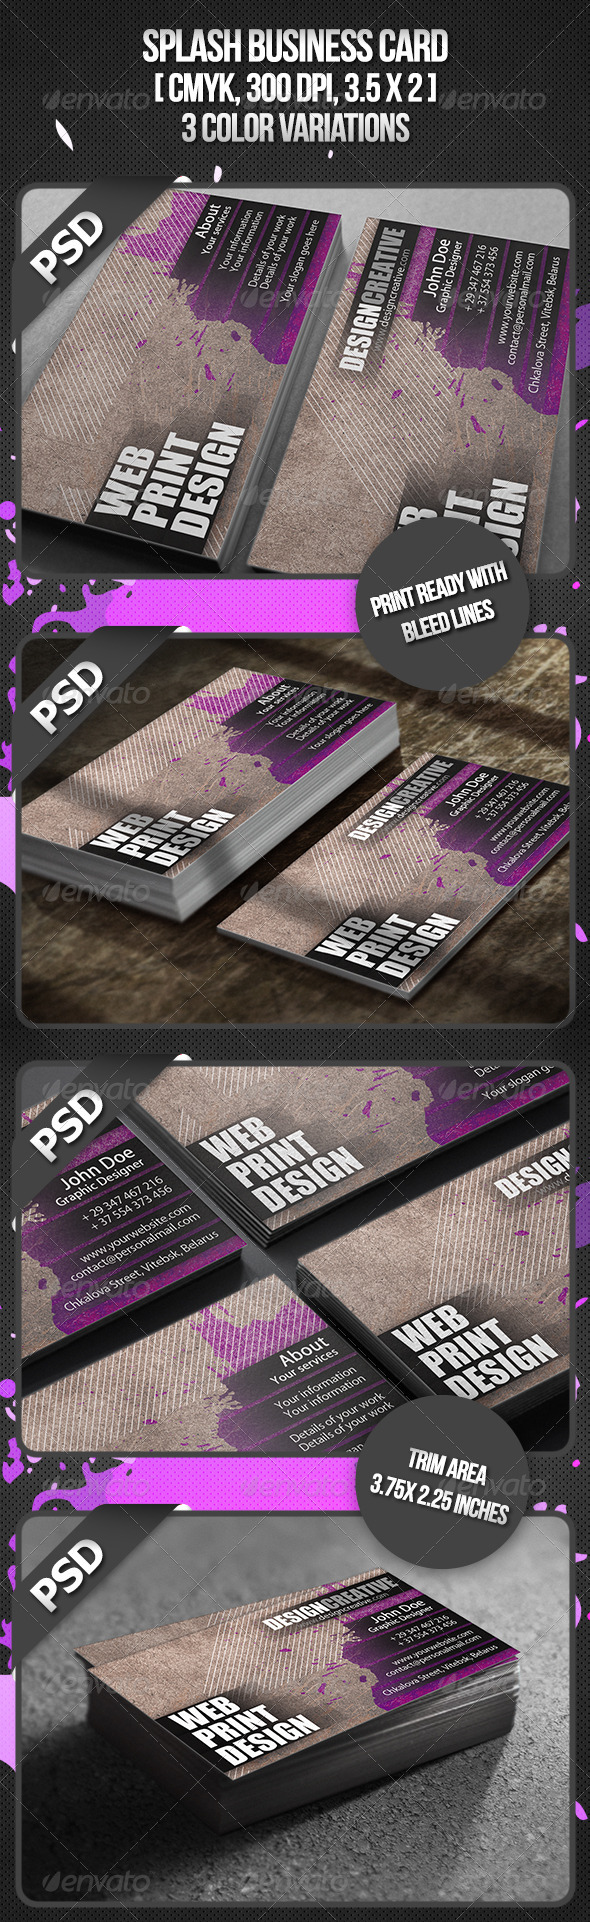 Splash Business Card - Grunge Business Cards